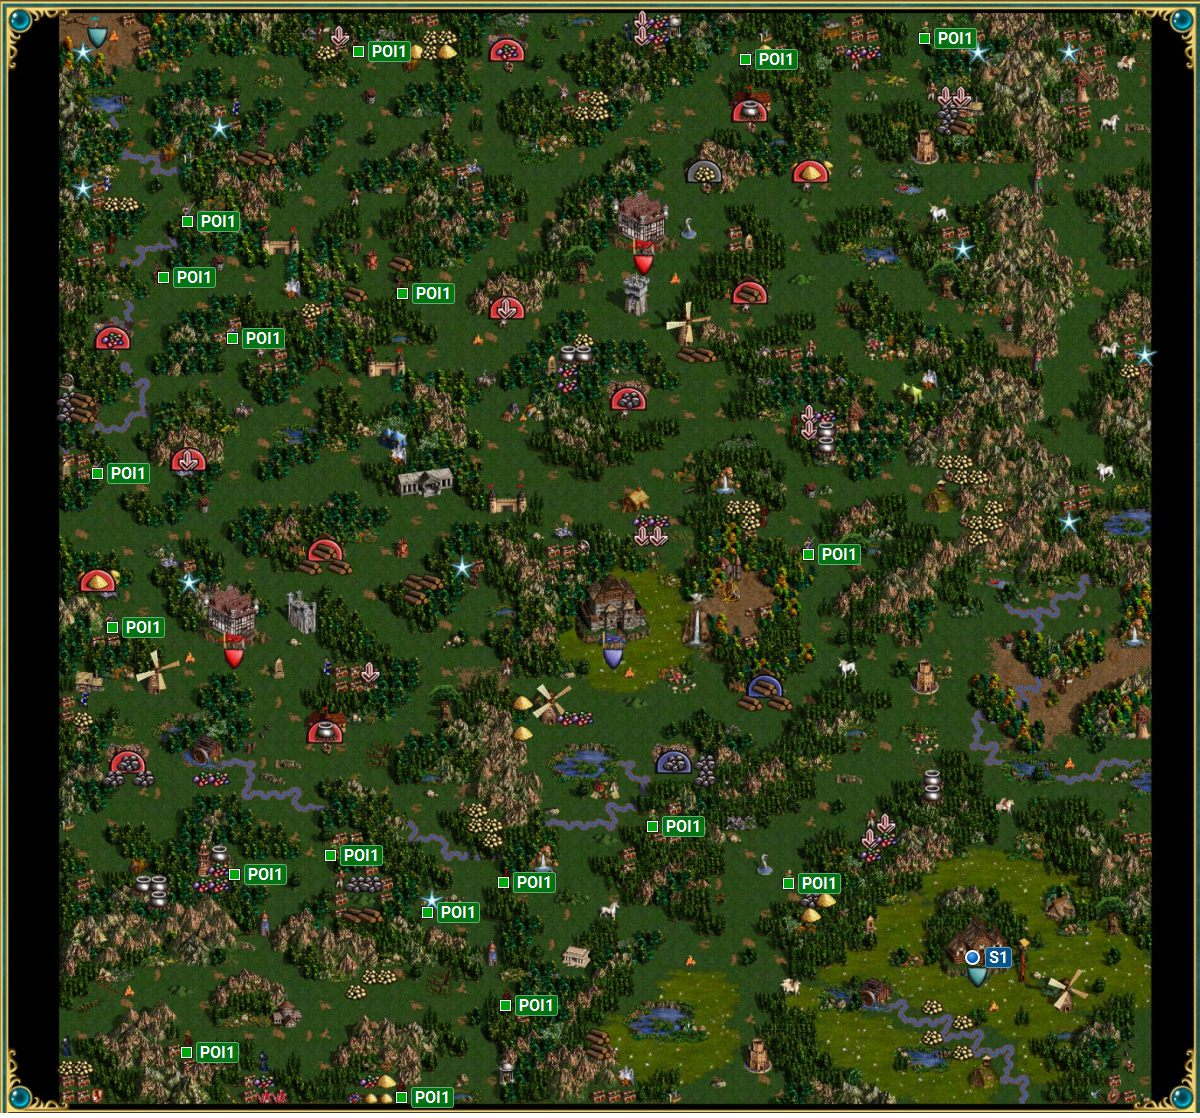 Heroes of might and magic 3 strategy guide pdf